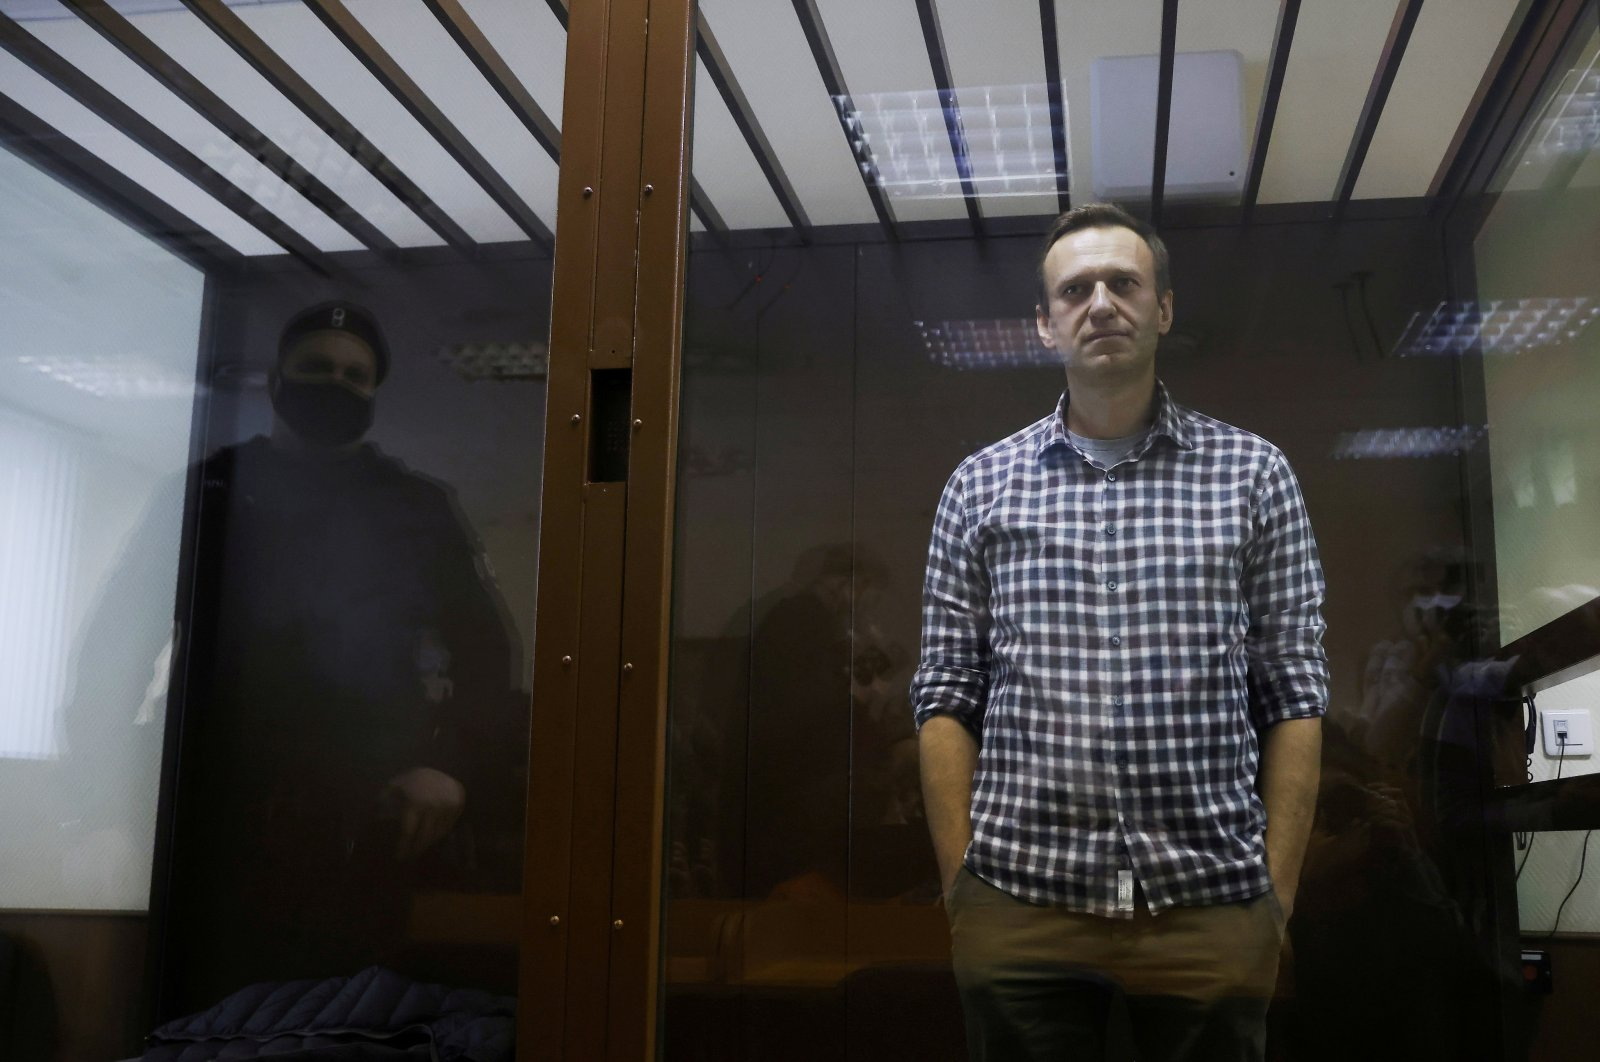 Russian opposition leader Alexei Navalny attends a hearing to consider an appeal against an earlier court decision to change his suspended sentence to a real prison term, in Moscow, Russia, Feb. 20, 2021. (Reuters Photo)